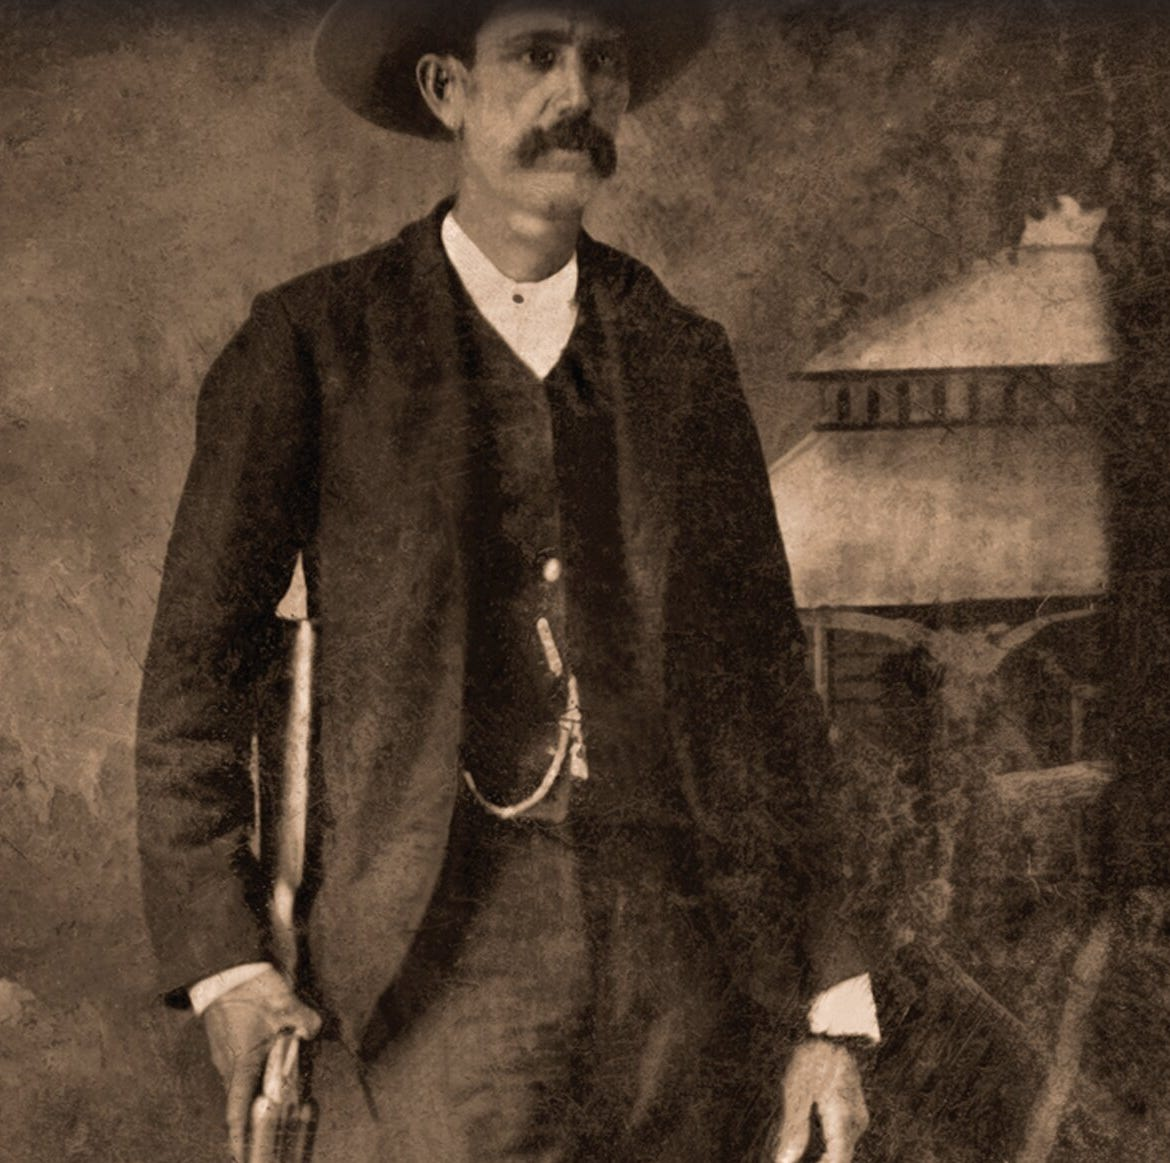 Pat Garrett Western Heritage Festival to unveil new photograph